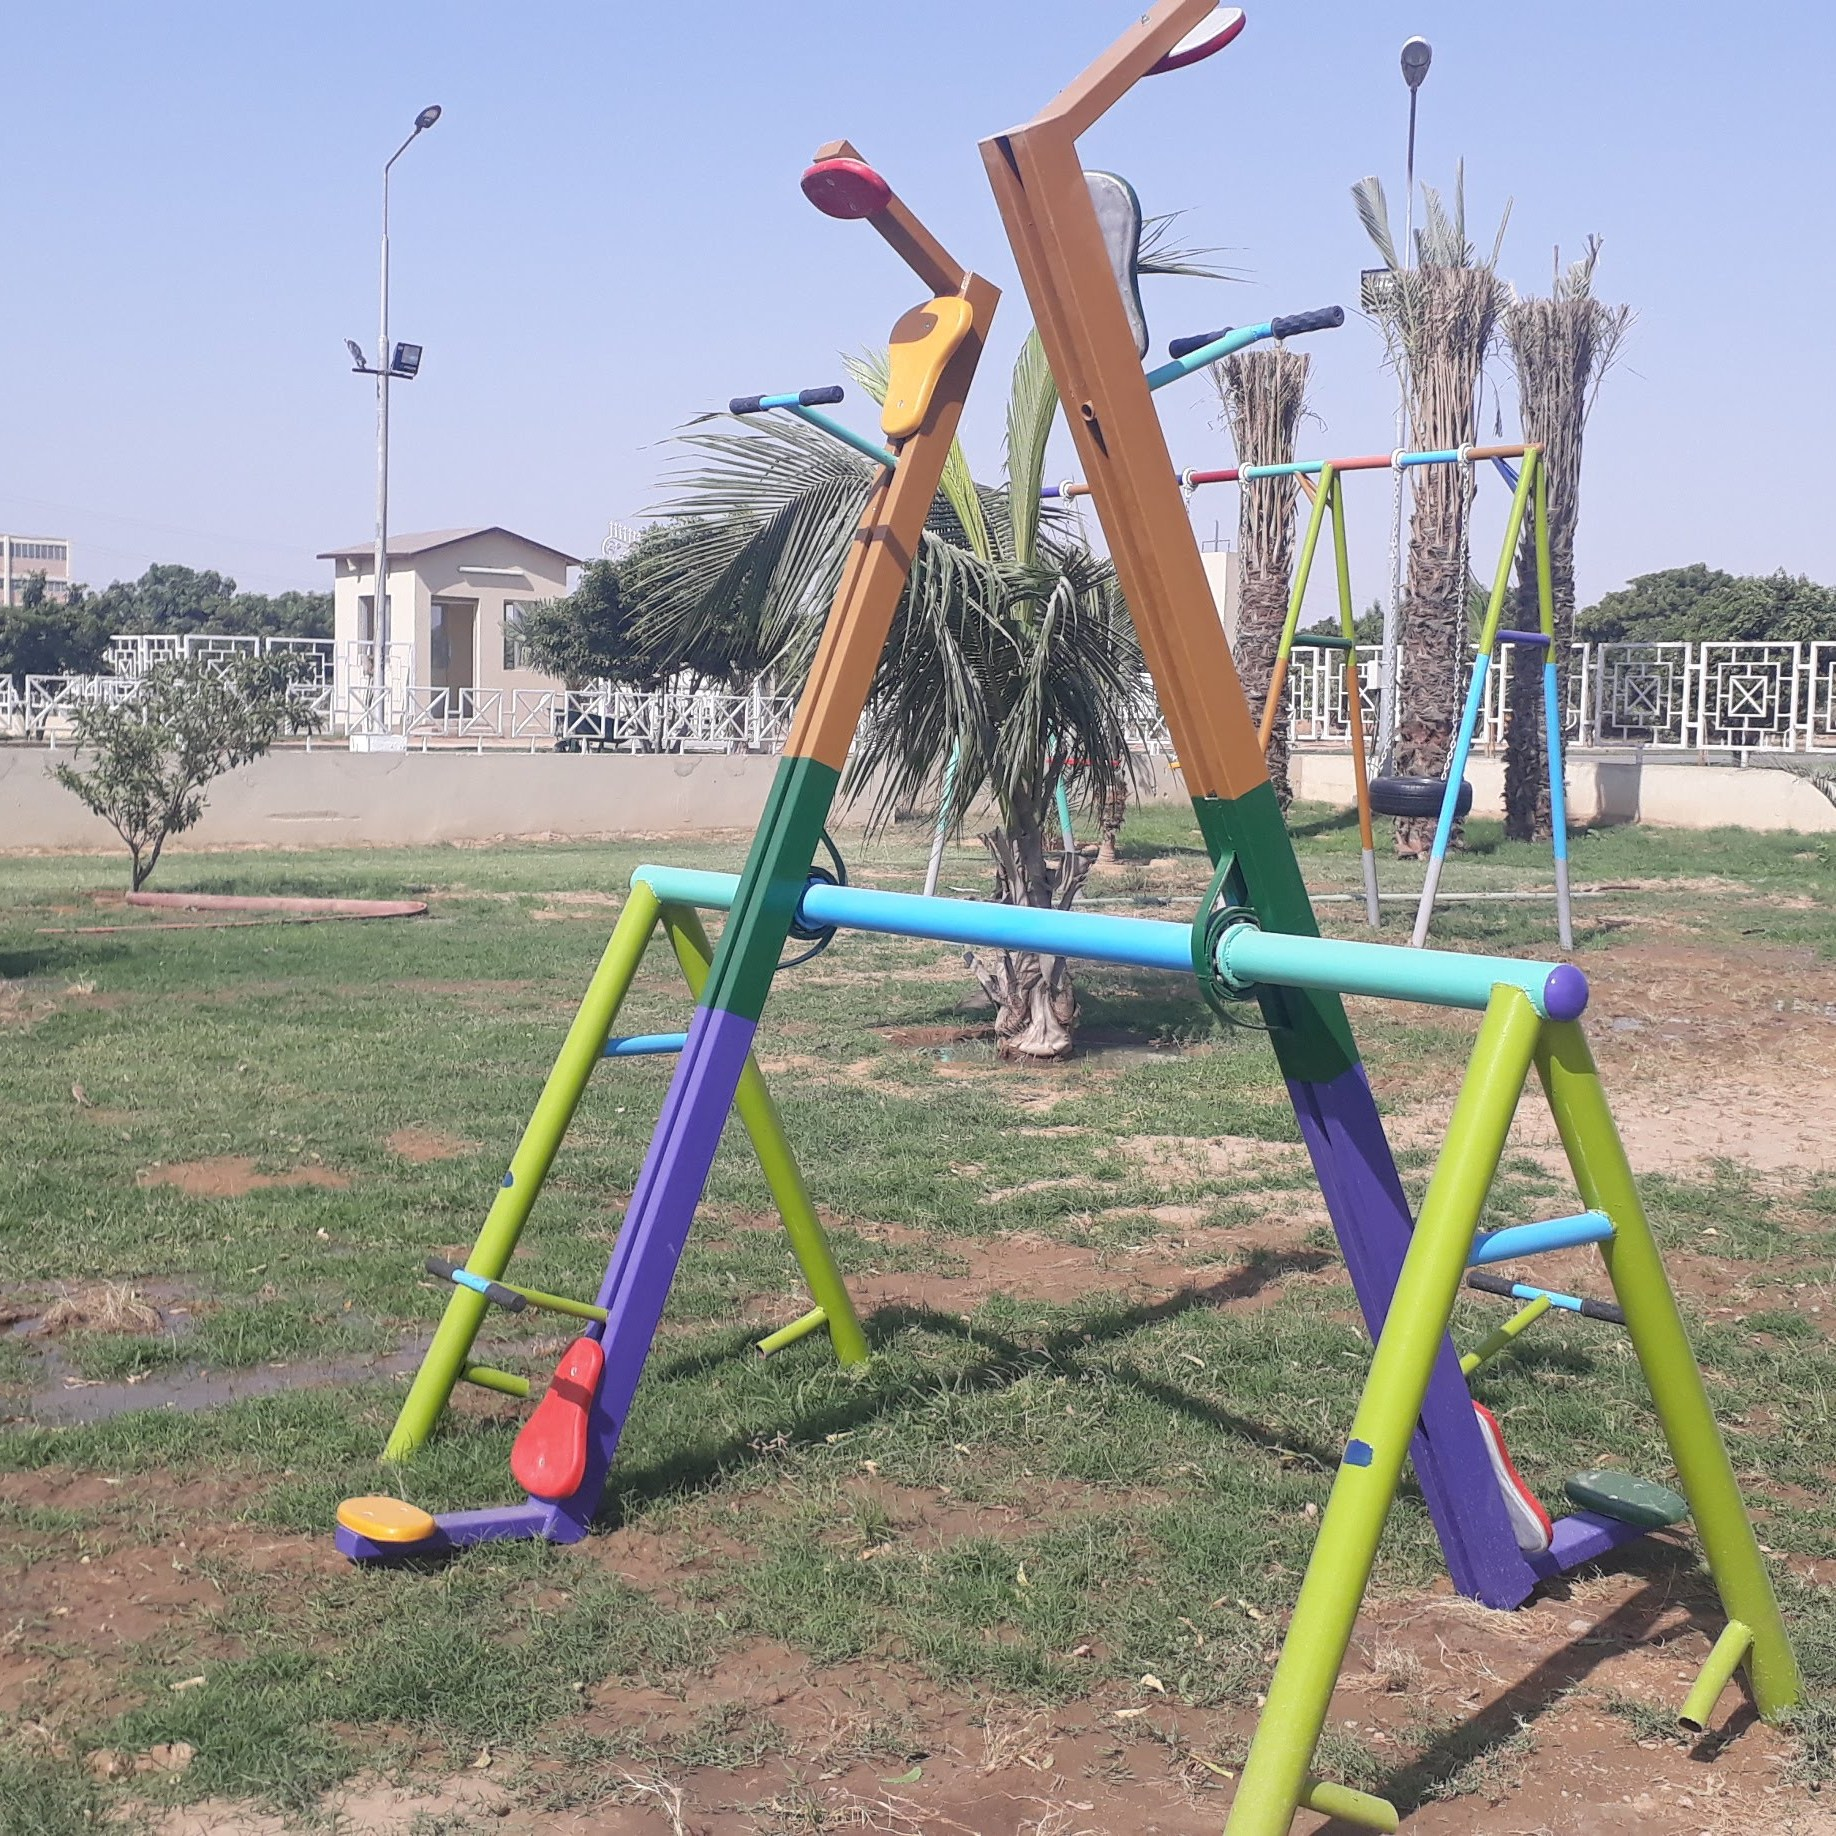 fiberglass swing and playground equipment